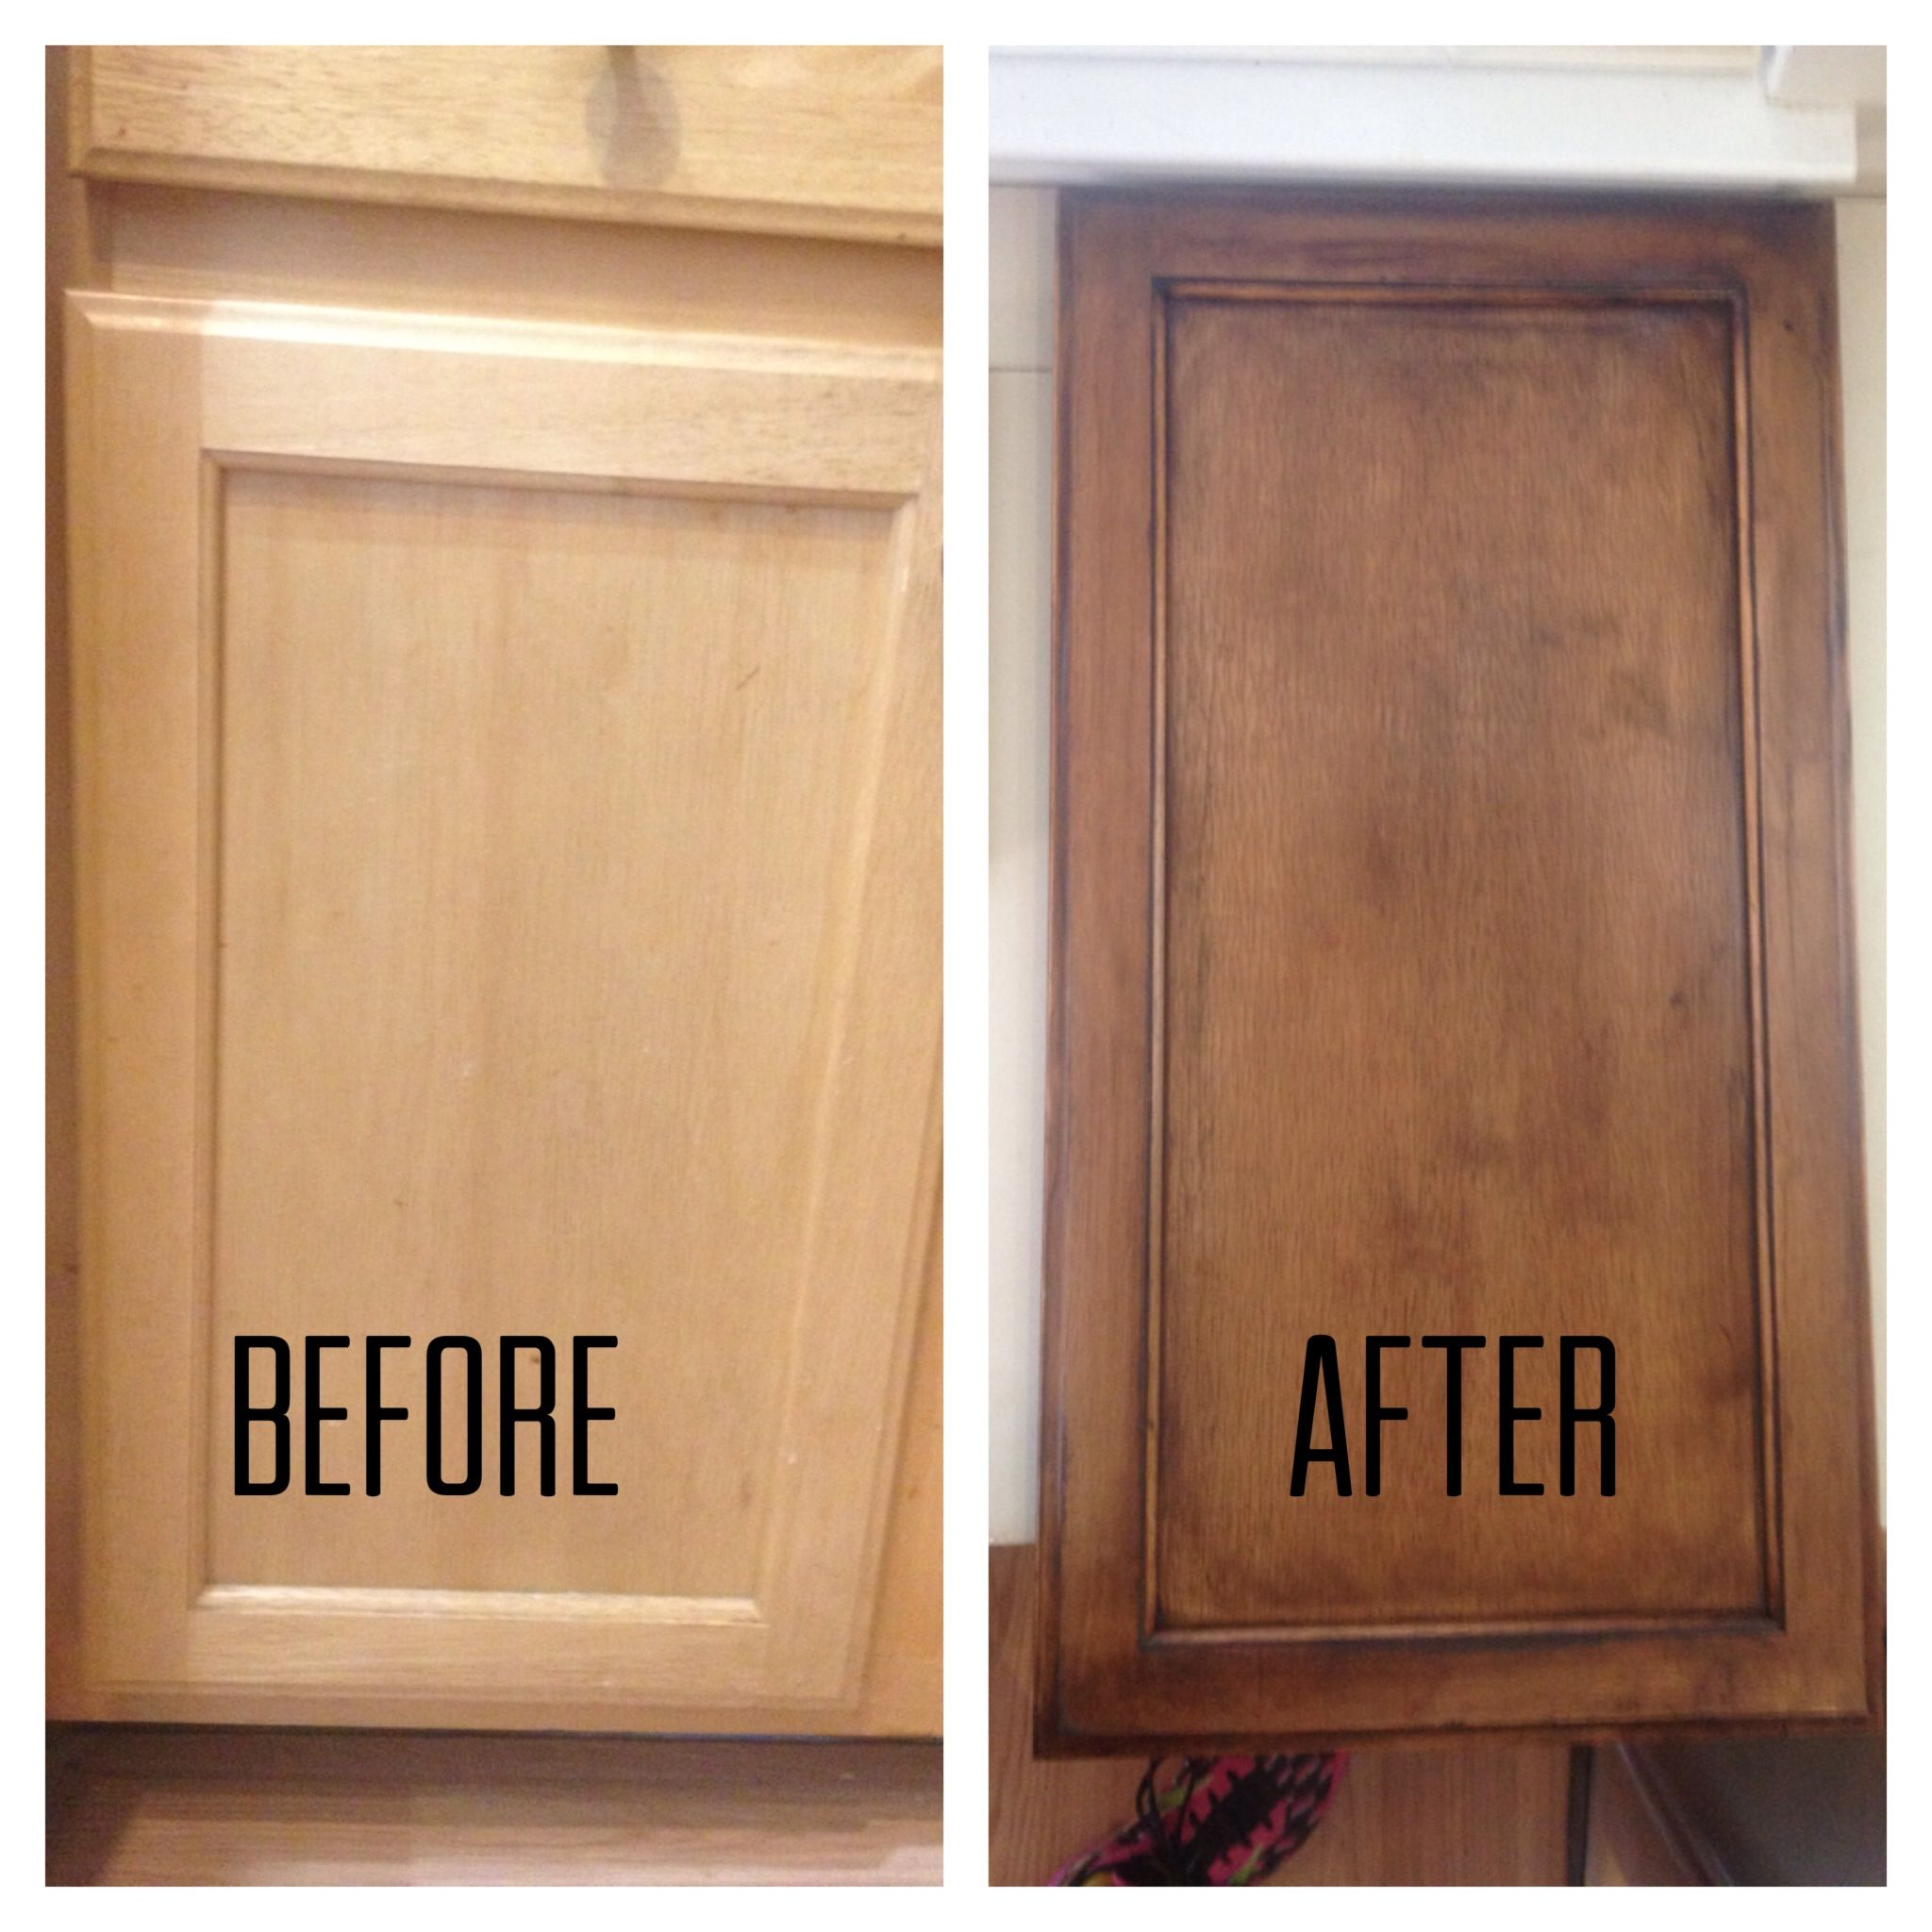 Painting Decorating Wirral Before After Resurfacing: Refinishing My Builder Grade Kitchen Cabinets! #diy